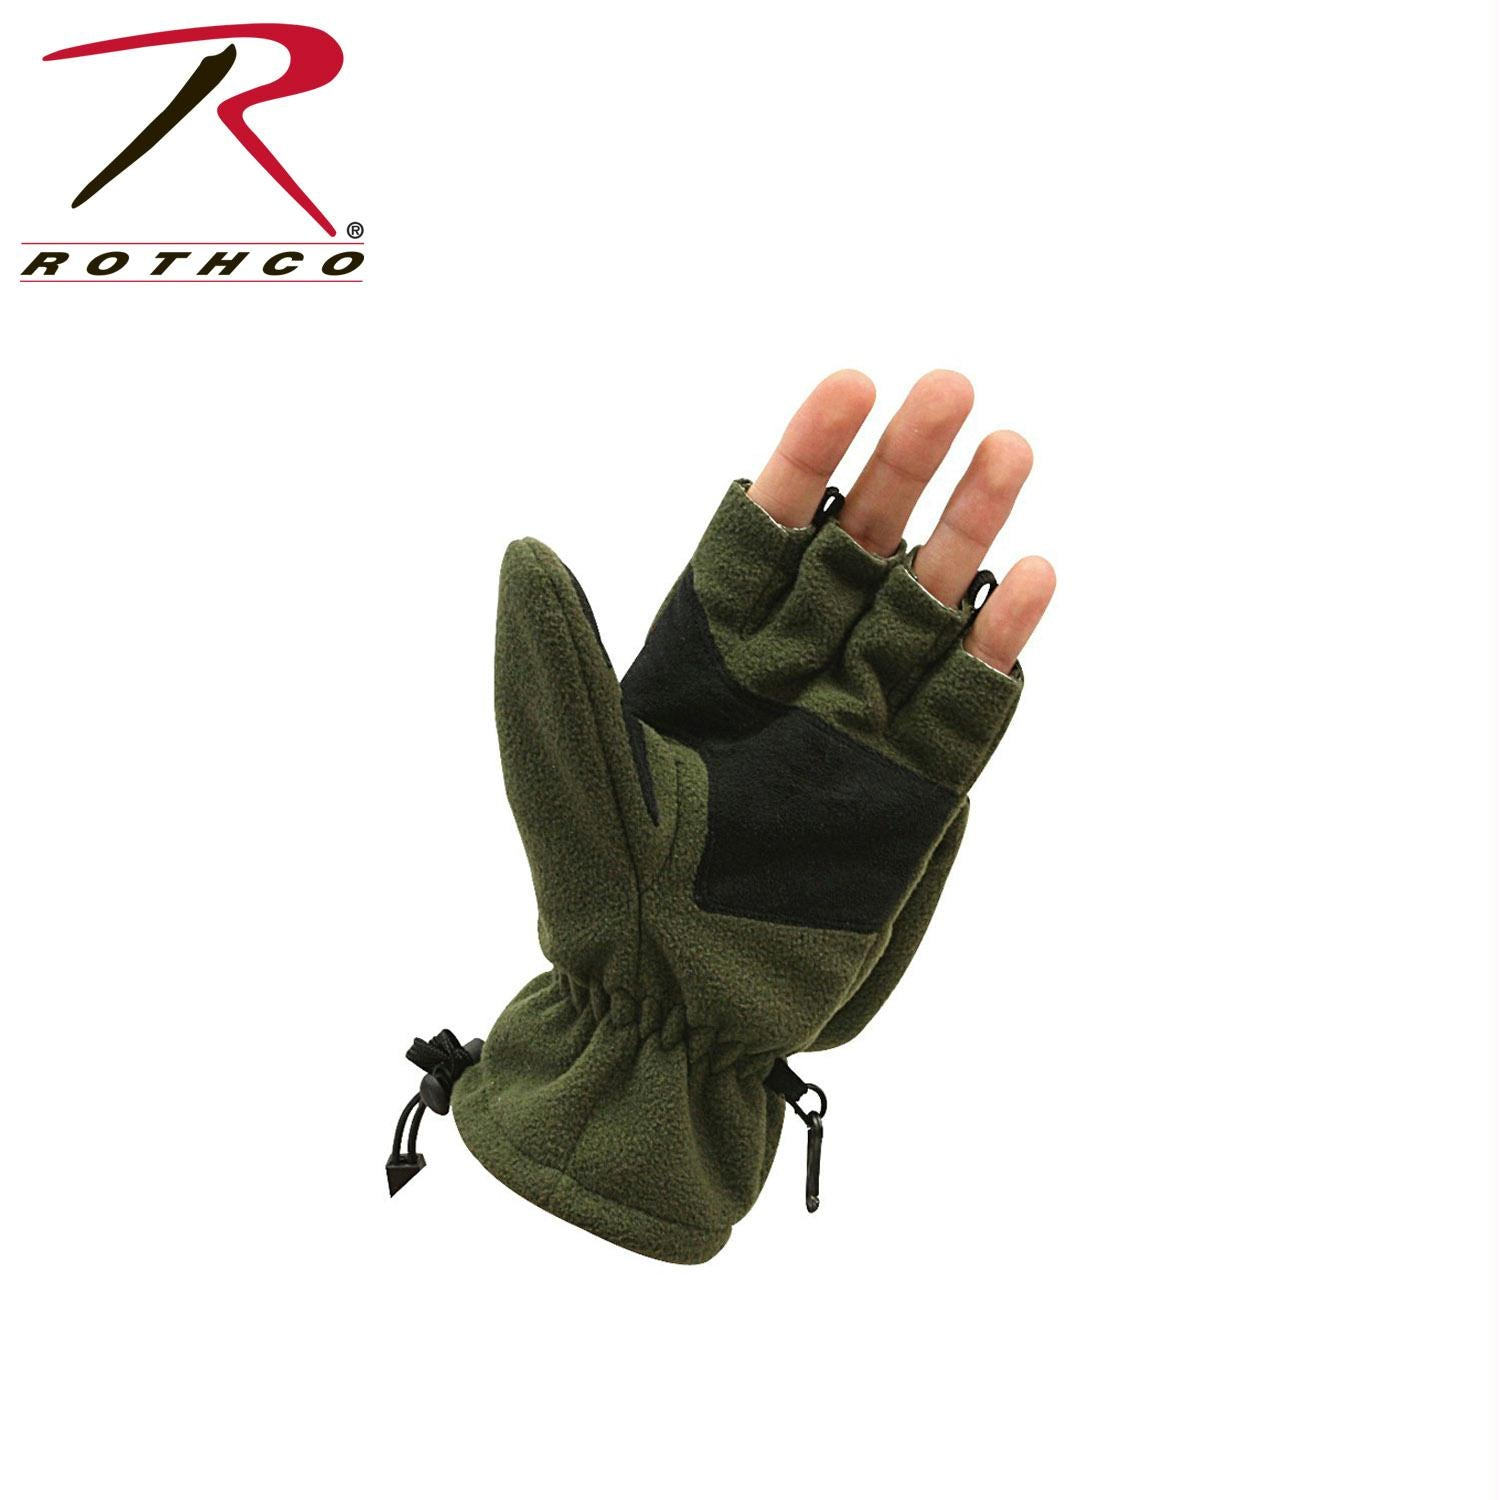 Rothco Fingerless Sniper Glove / Mittens - Olive Drab / M